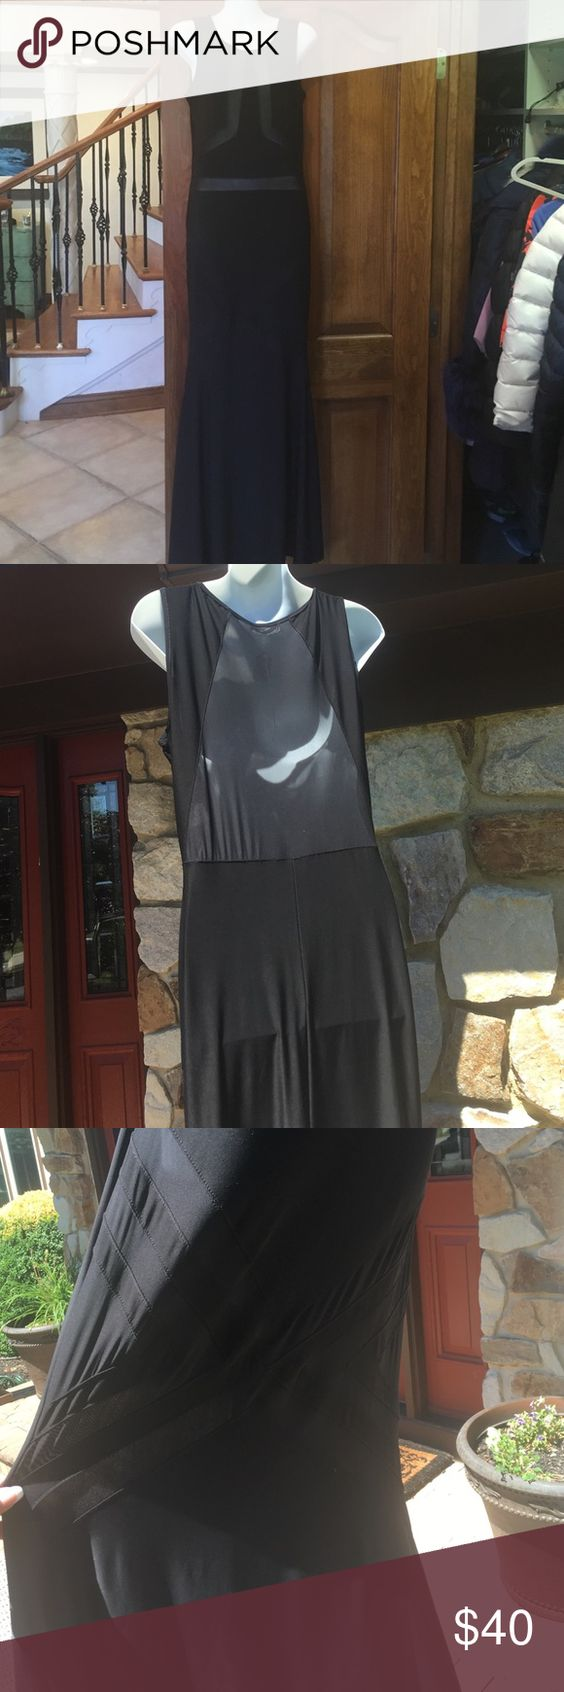 Black maxi mesh dress NEW WITH TAGS!! Super sexy maxi with black mesh cut outs!! Dresses Maxi